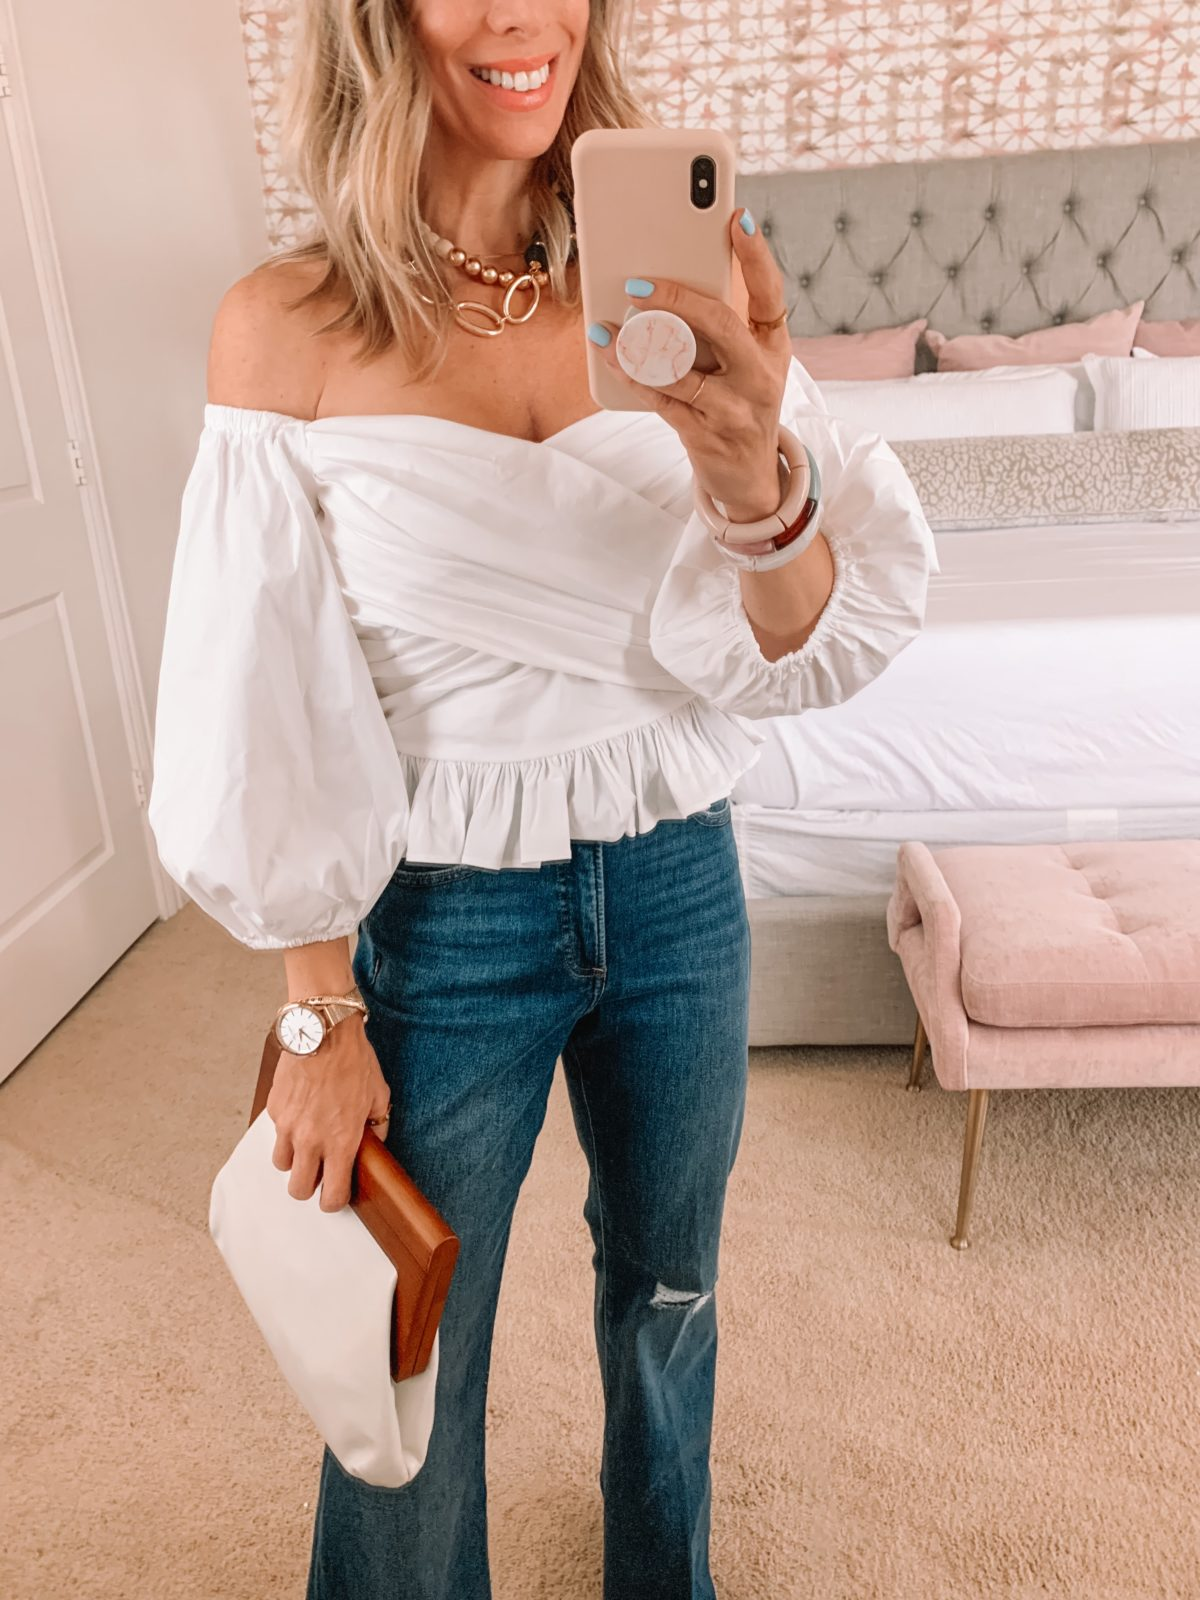 Dressing Room Finds, Wrap Top, Jeans, Clutch, Sandals